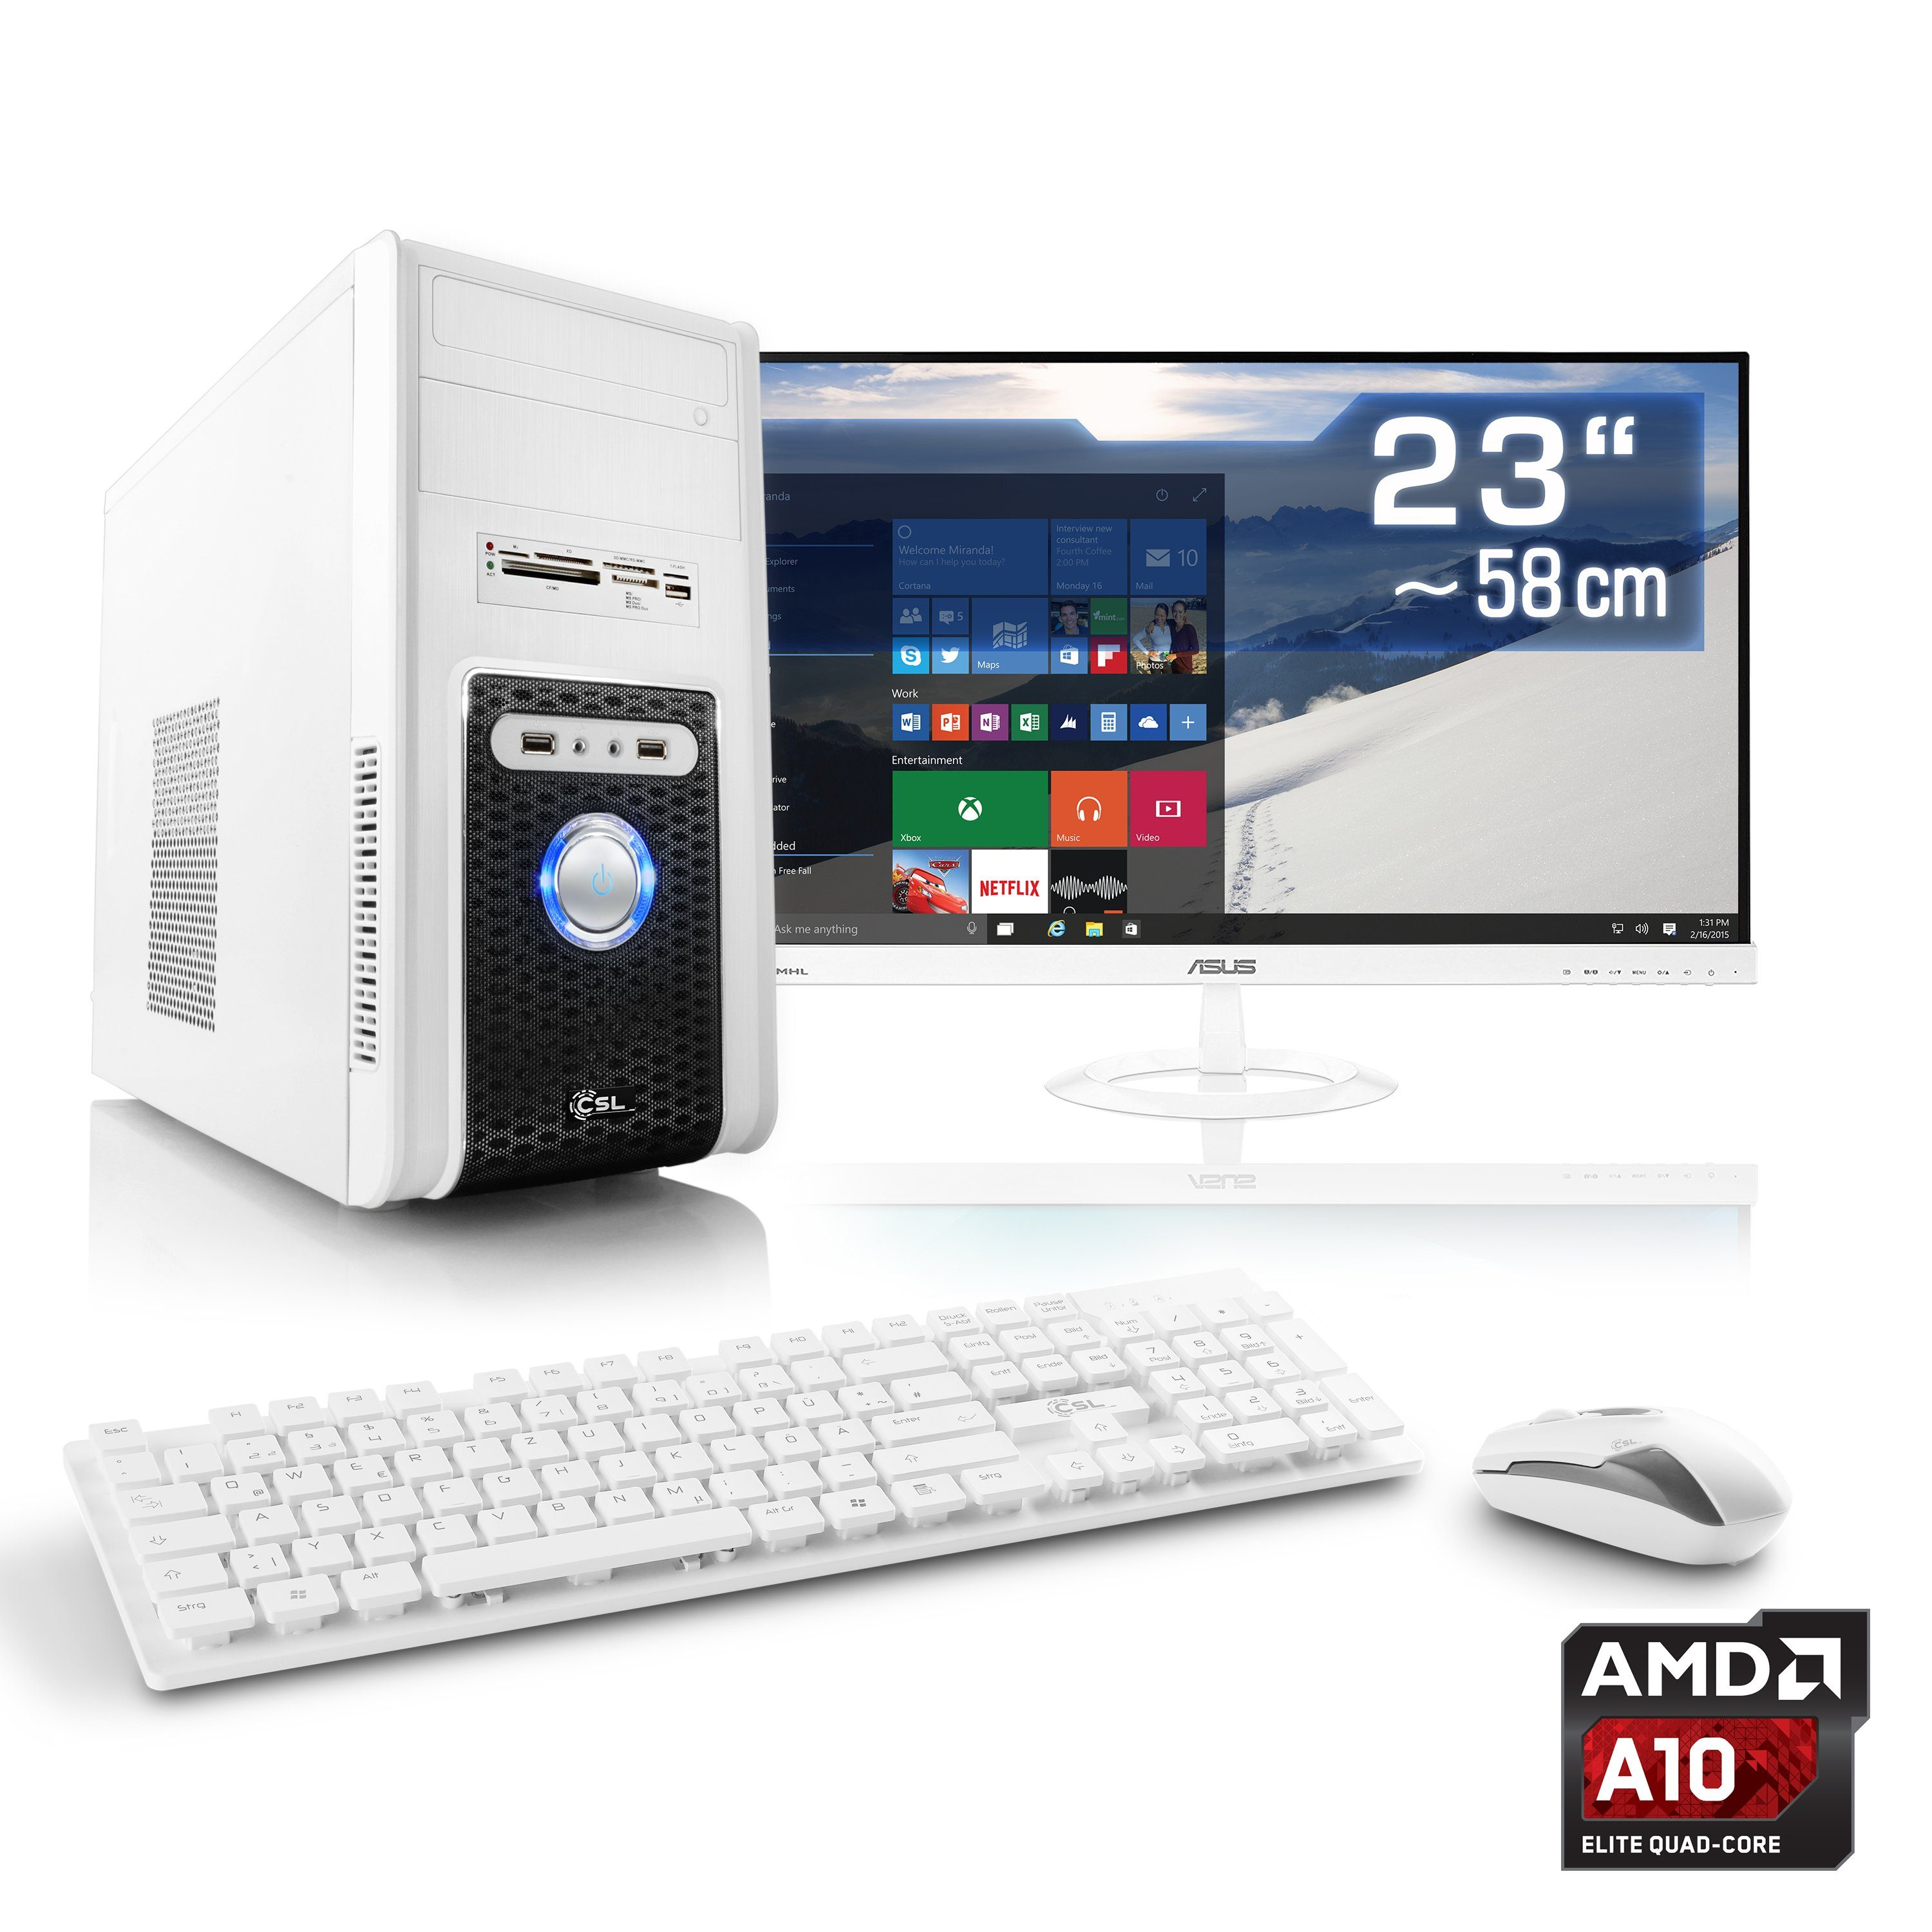 "CSL Multimedia PC Set | A10-6790K | HD 8670D | 16 GB RAM | 23"" TFT »Sprint T4601 Windows 10 Home«"